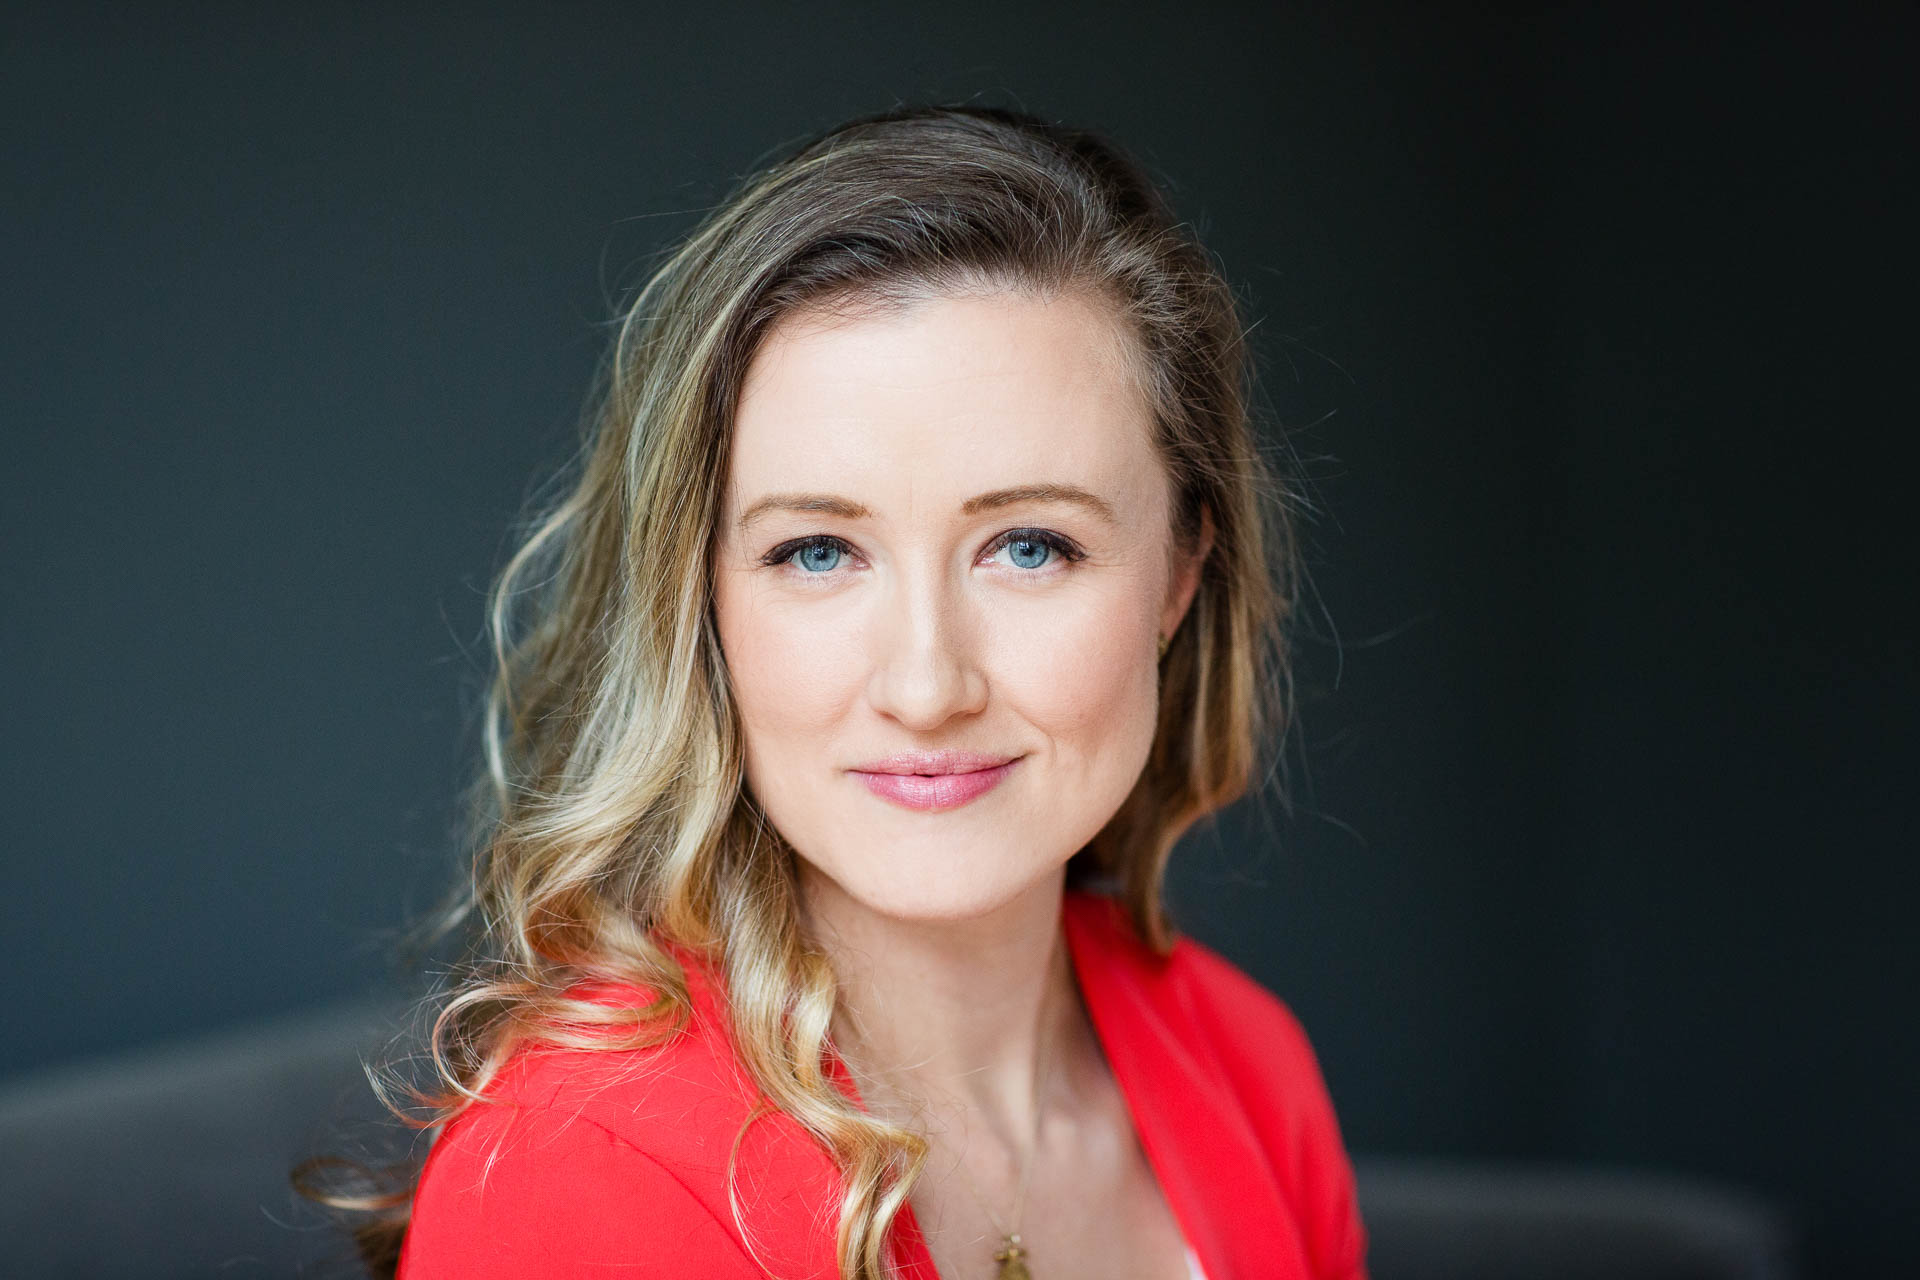 headshots or personal brand photography? portrait of woman in red jacket